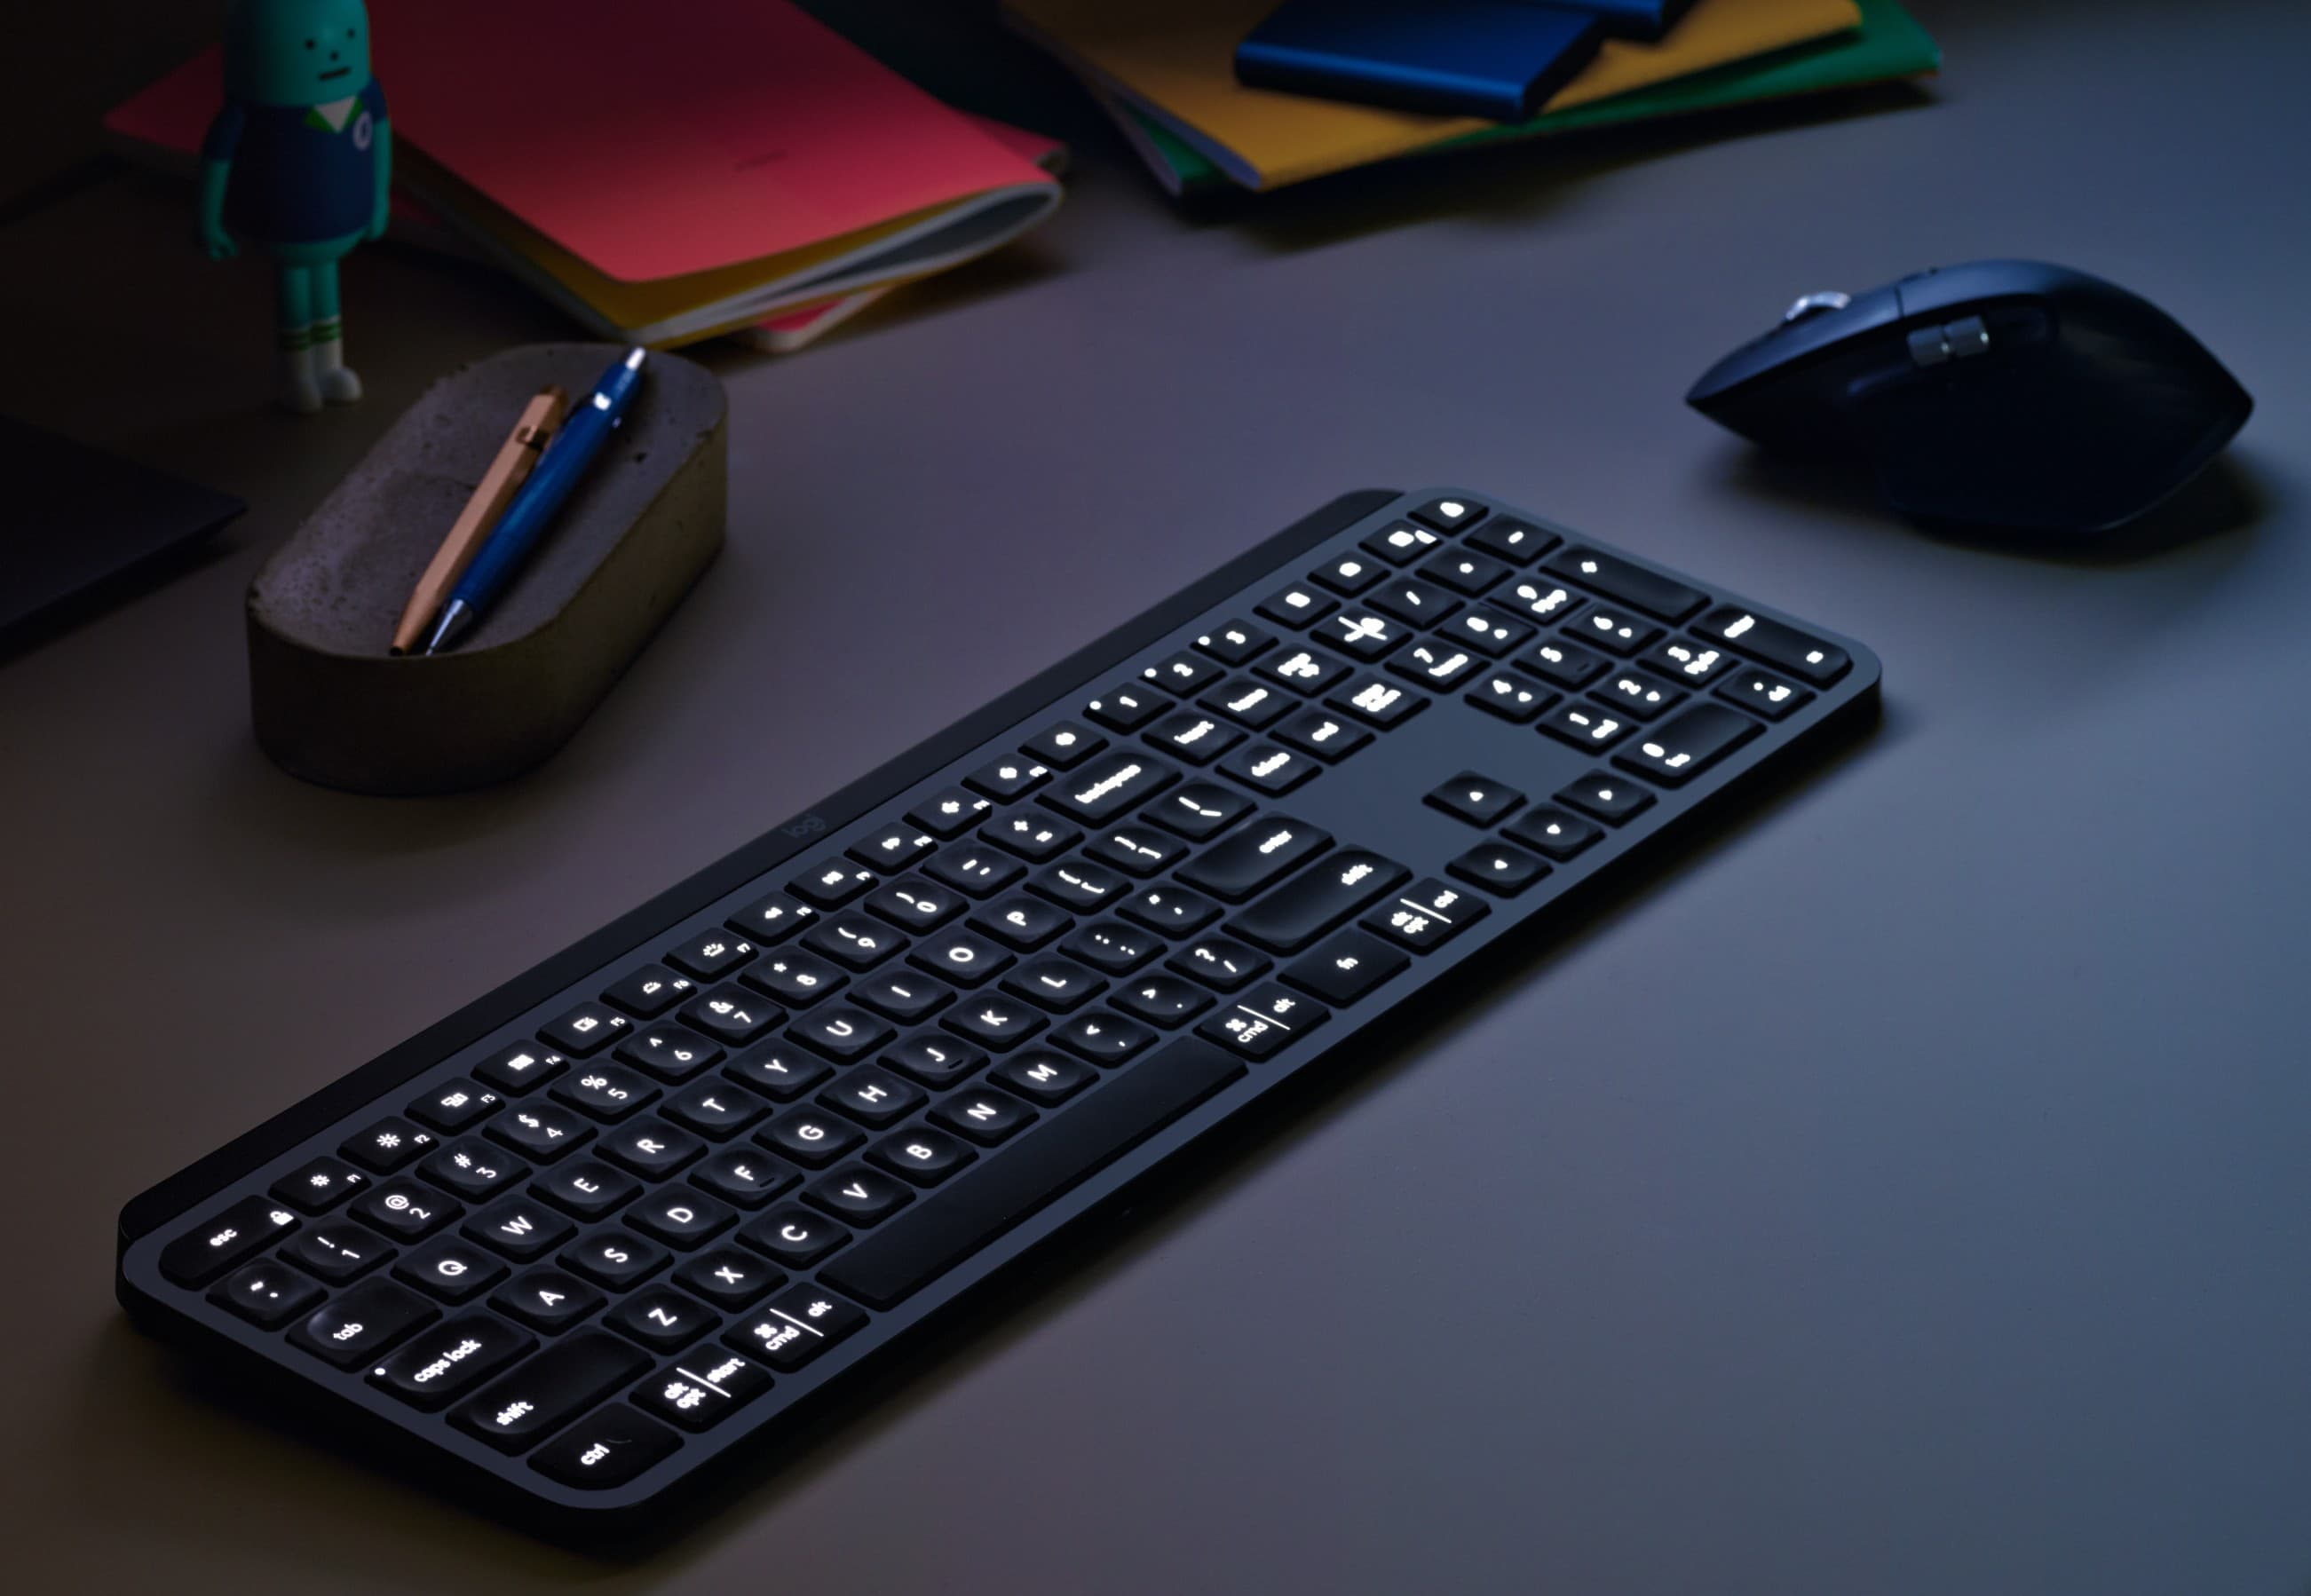 Make your work-from-home setup more comfortable with a solid keyboard and mouse like the Logitech MX Keys and MX Master 3.